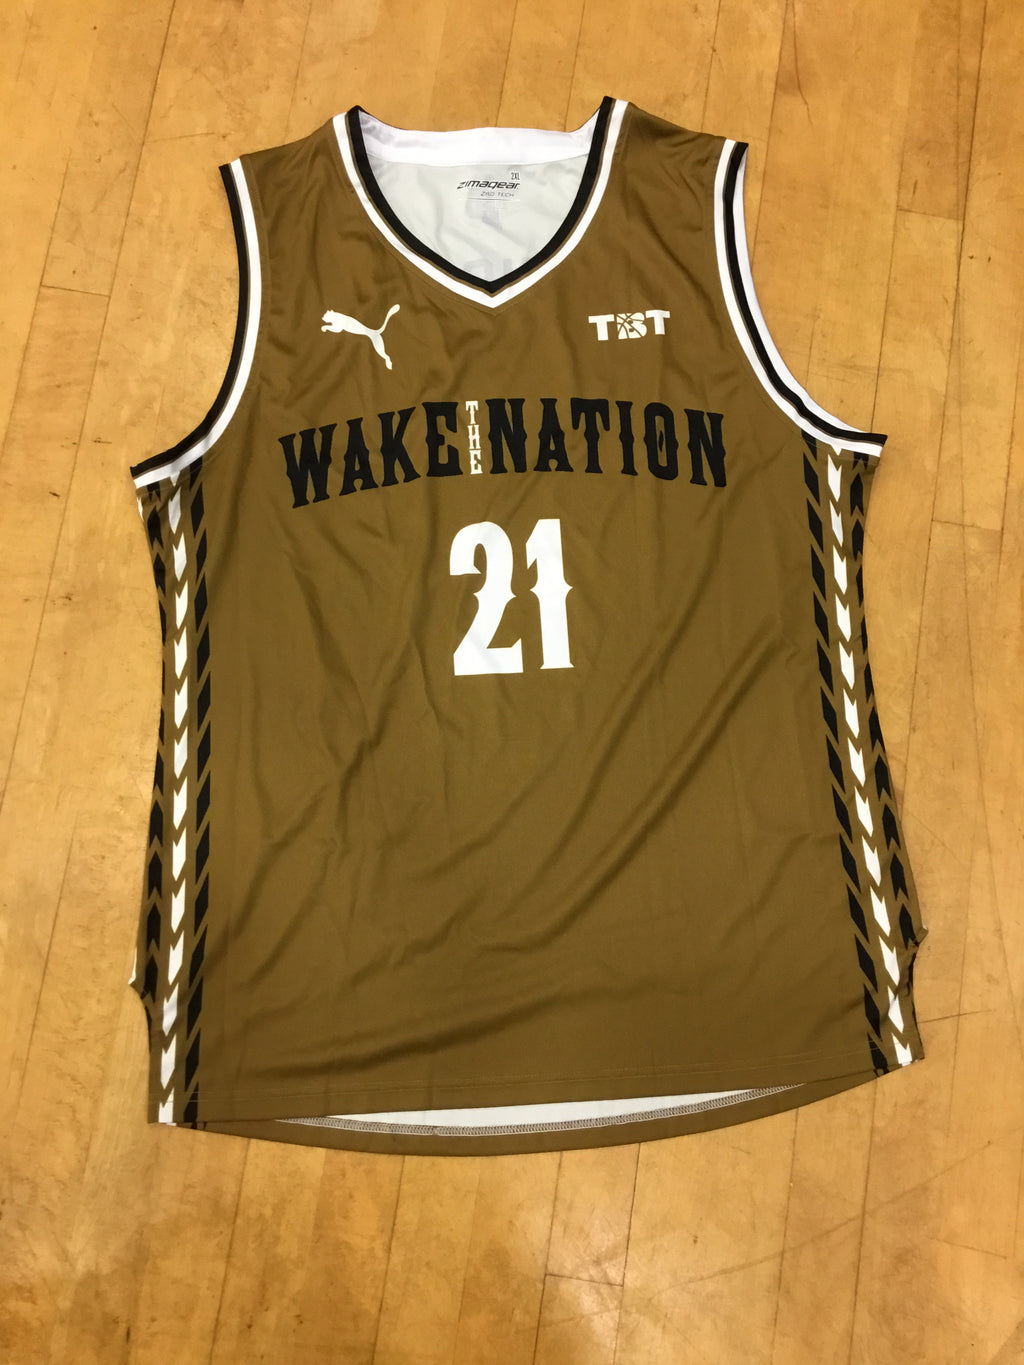 Wake the Nation - 2018 Official Jersey